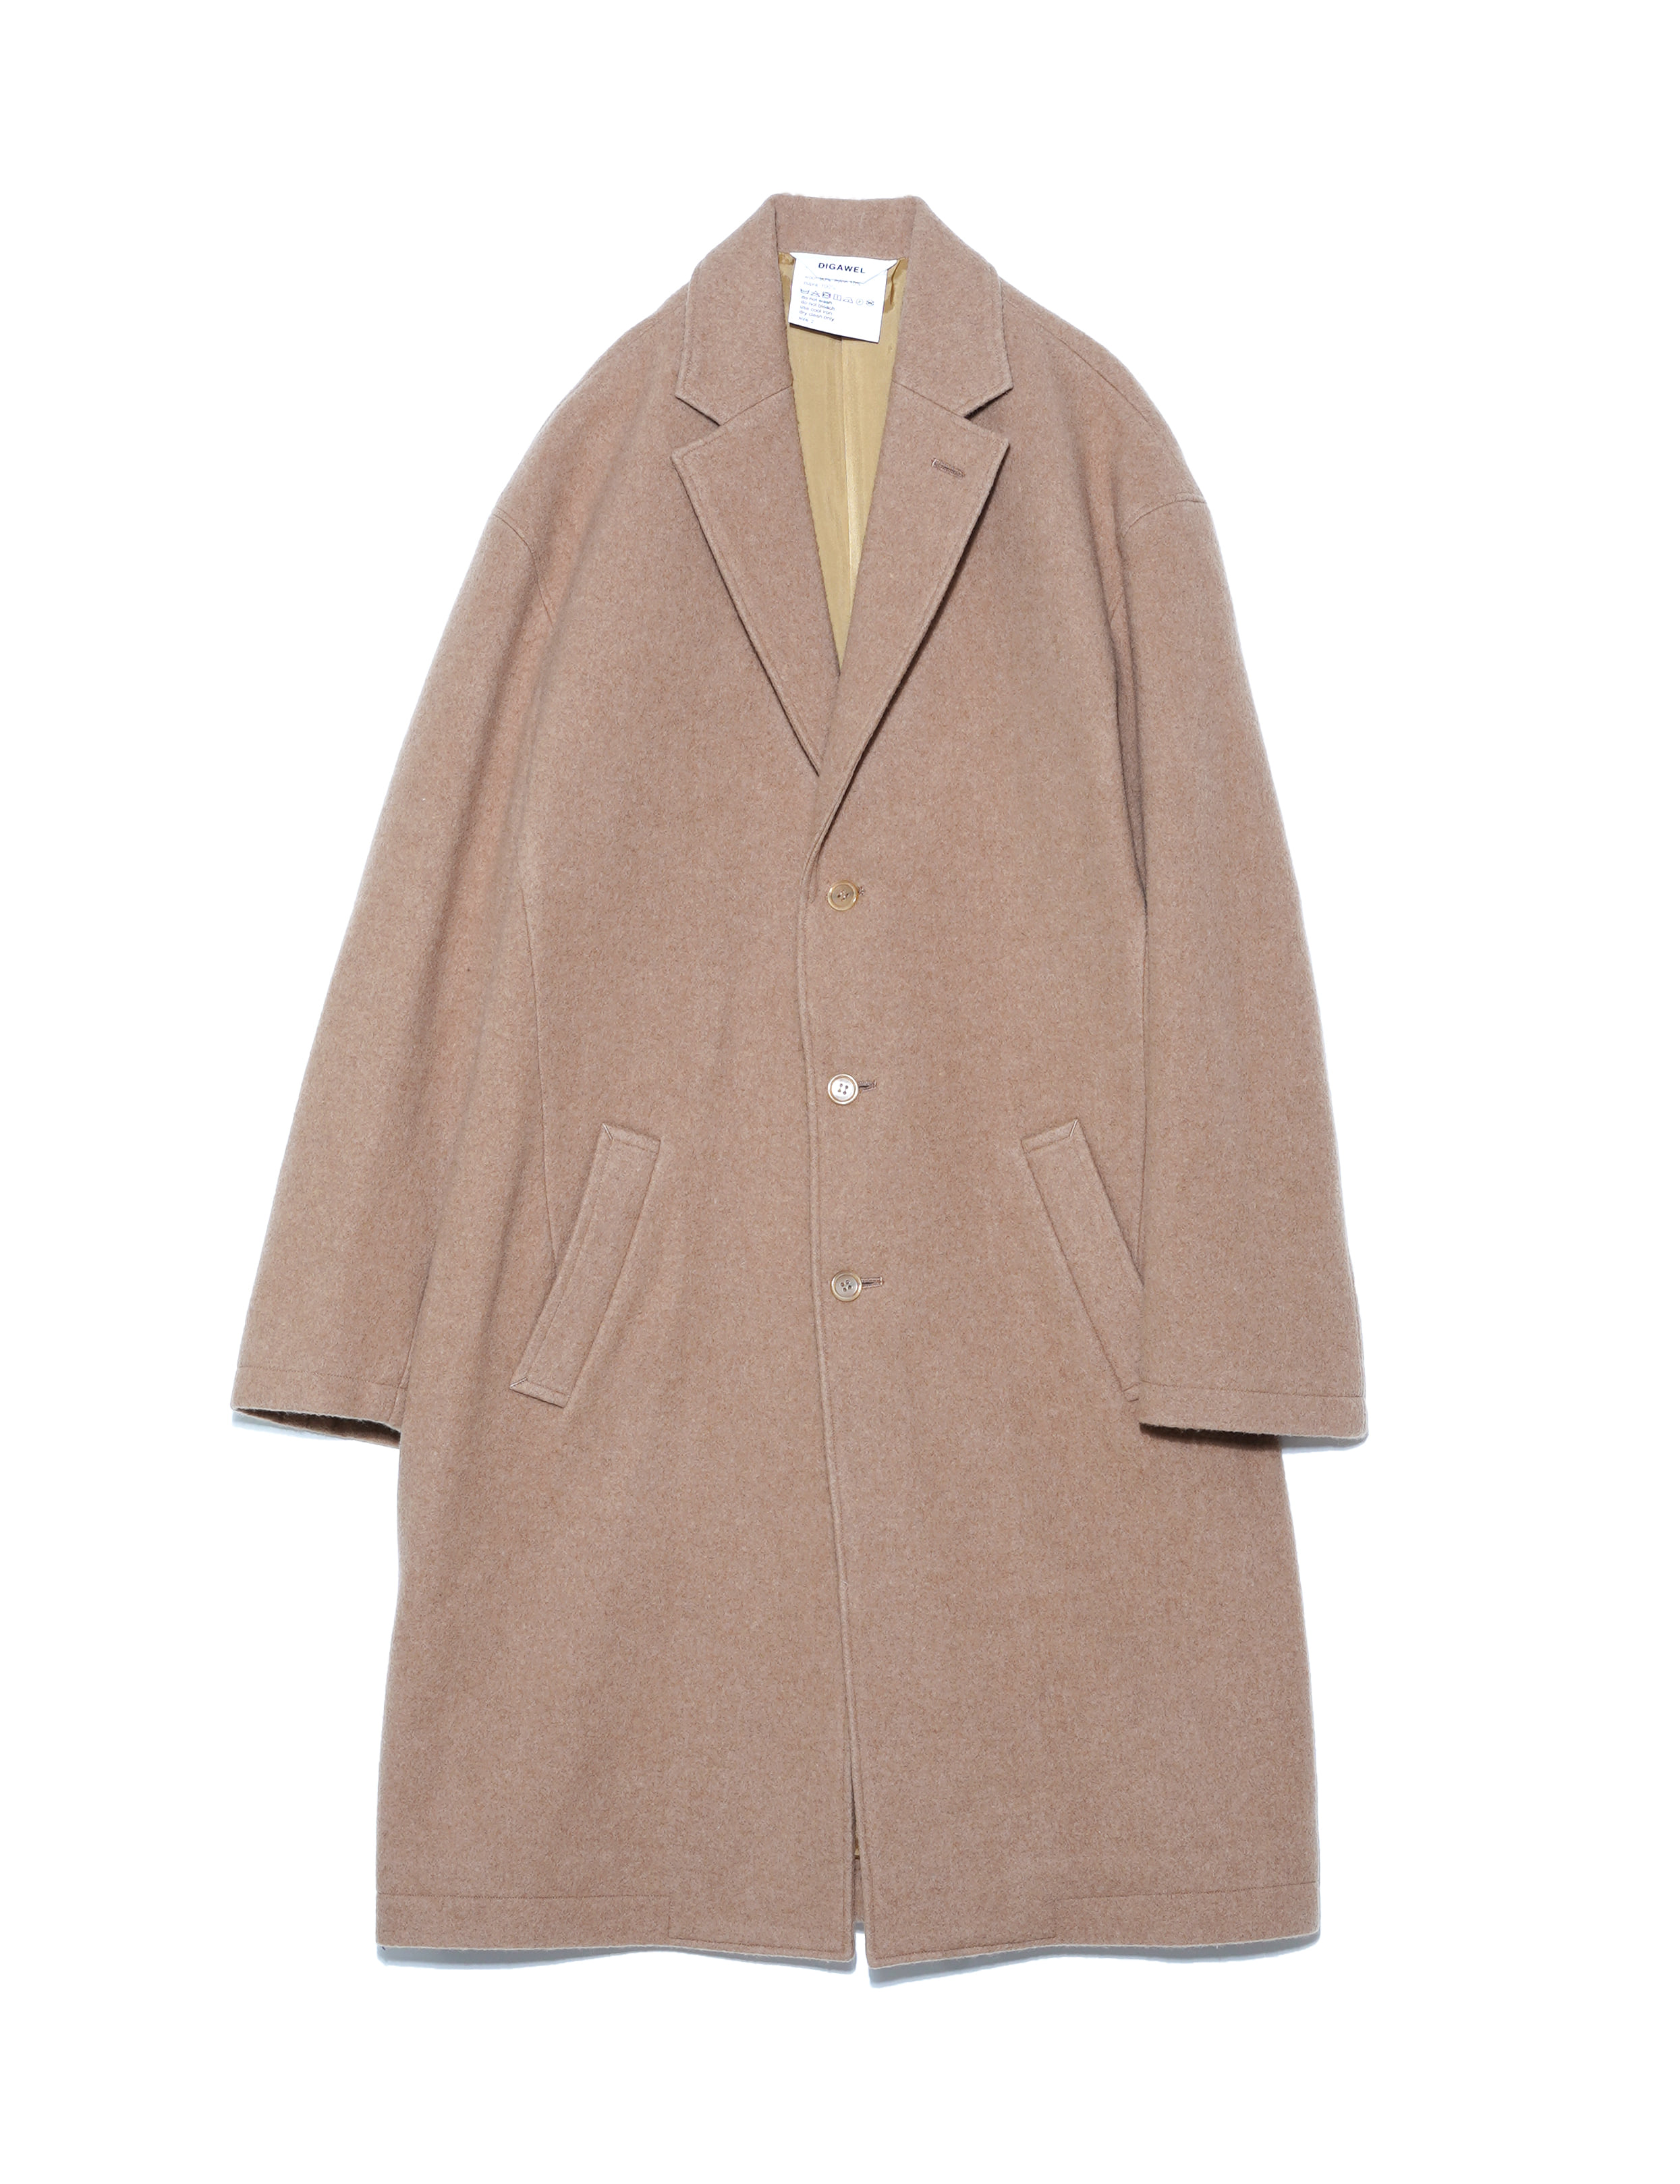 NAPPING LONG COAT (BEIGE)